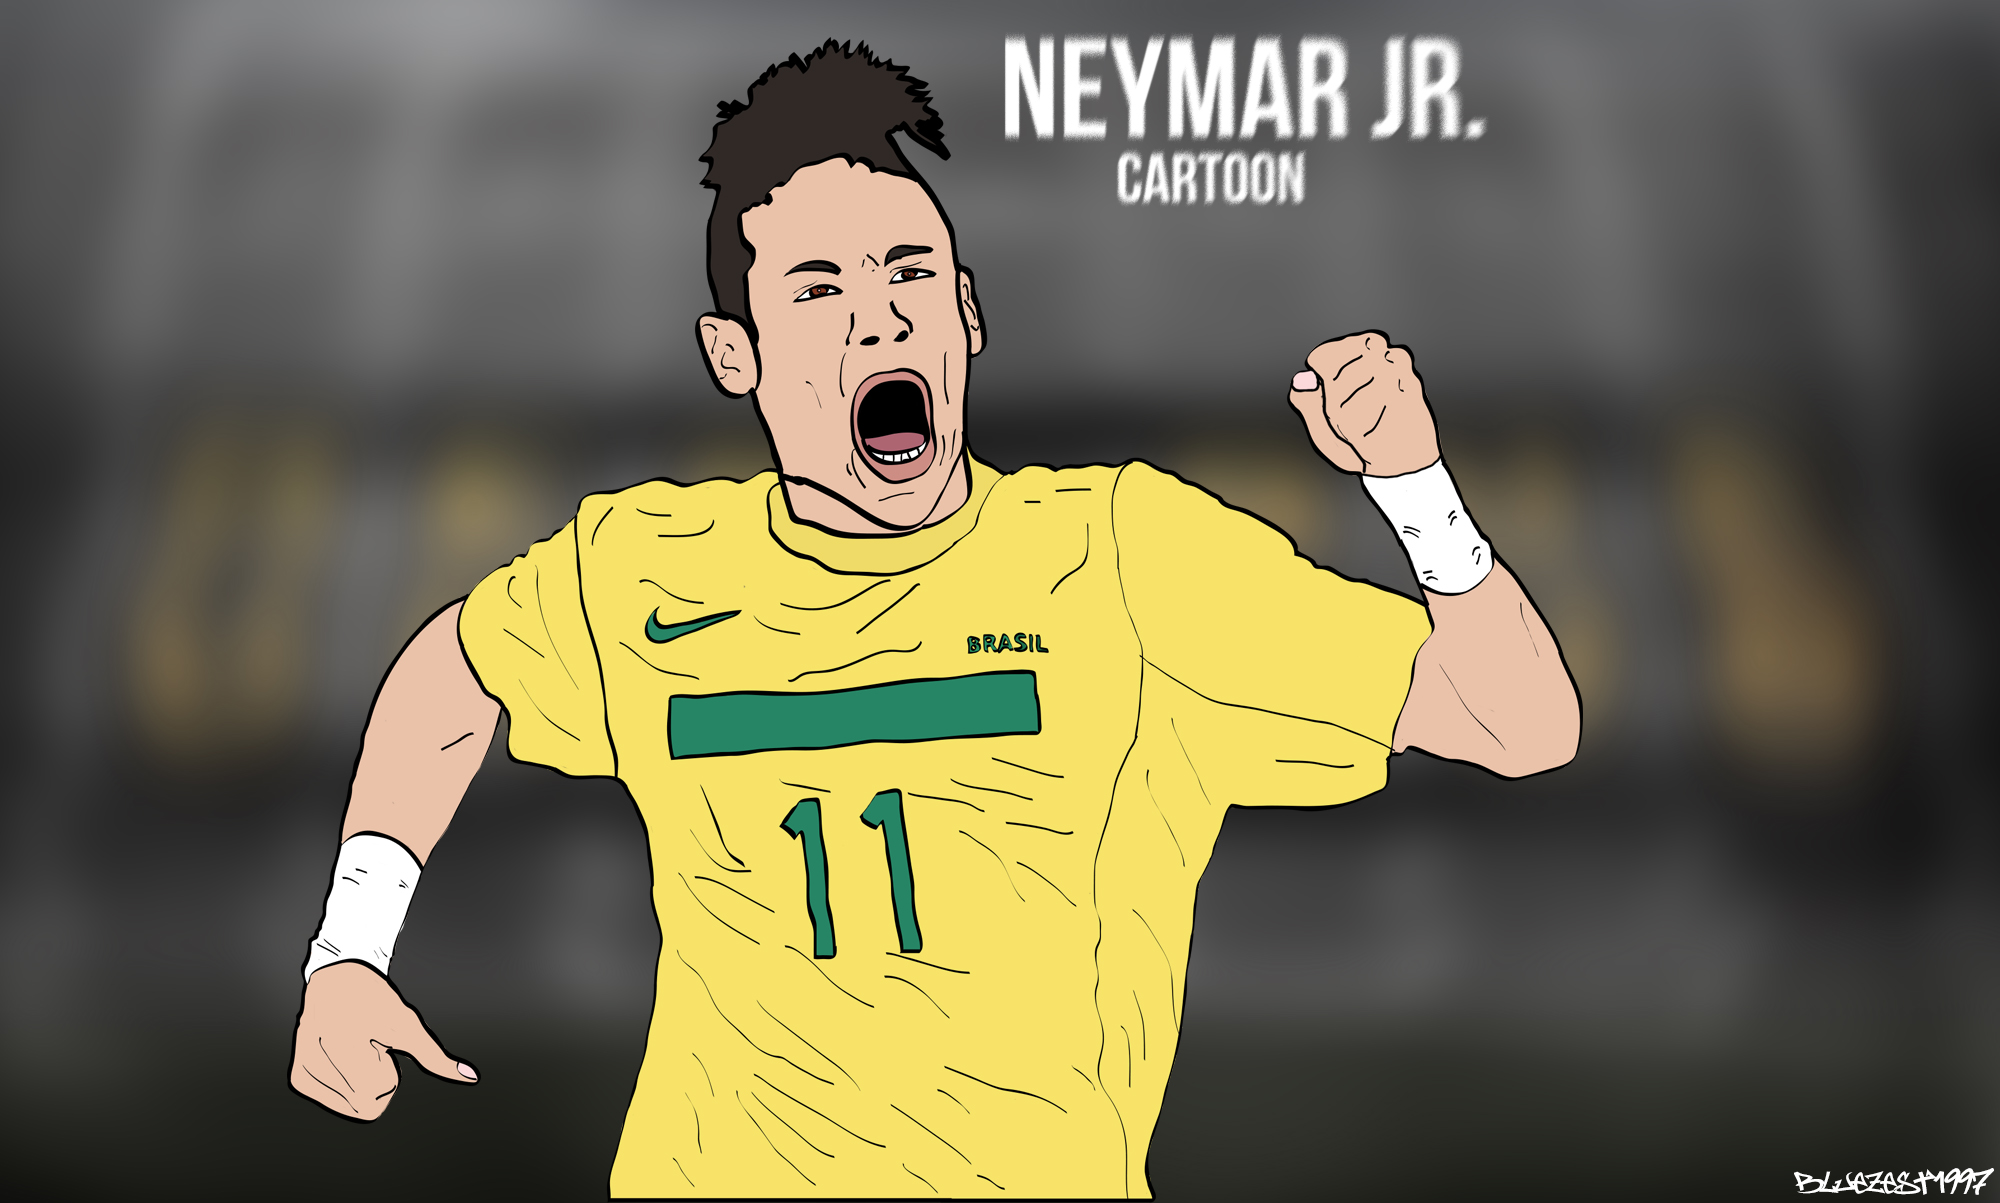 Neymar JR Cartoon Wallpaper By Bluezest1997 On DeviantArt